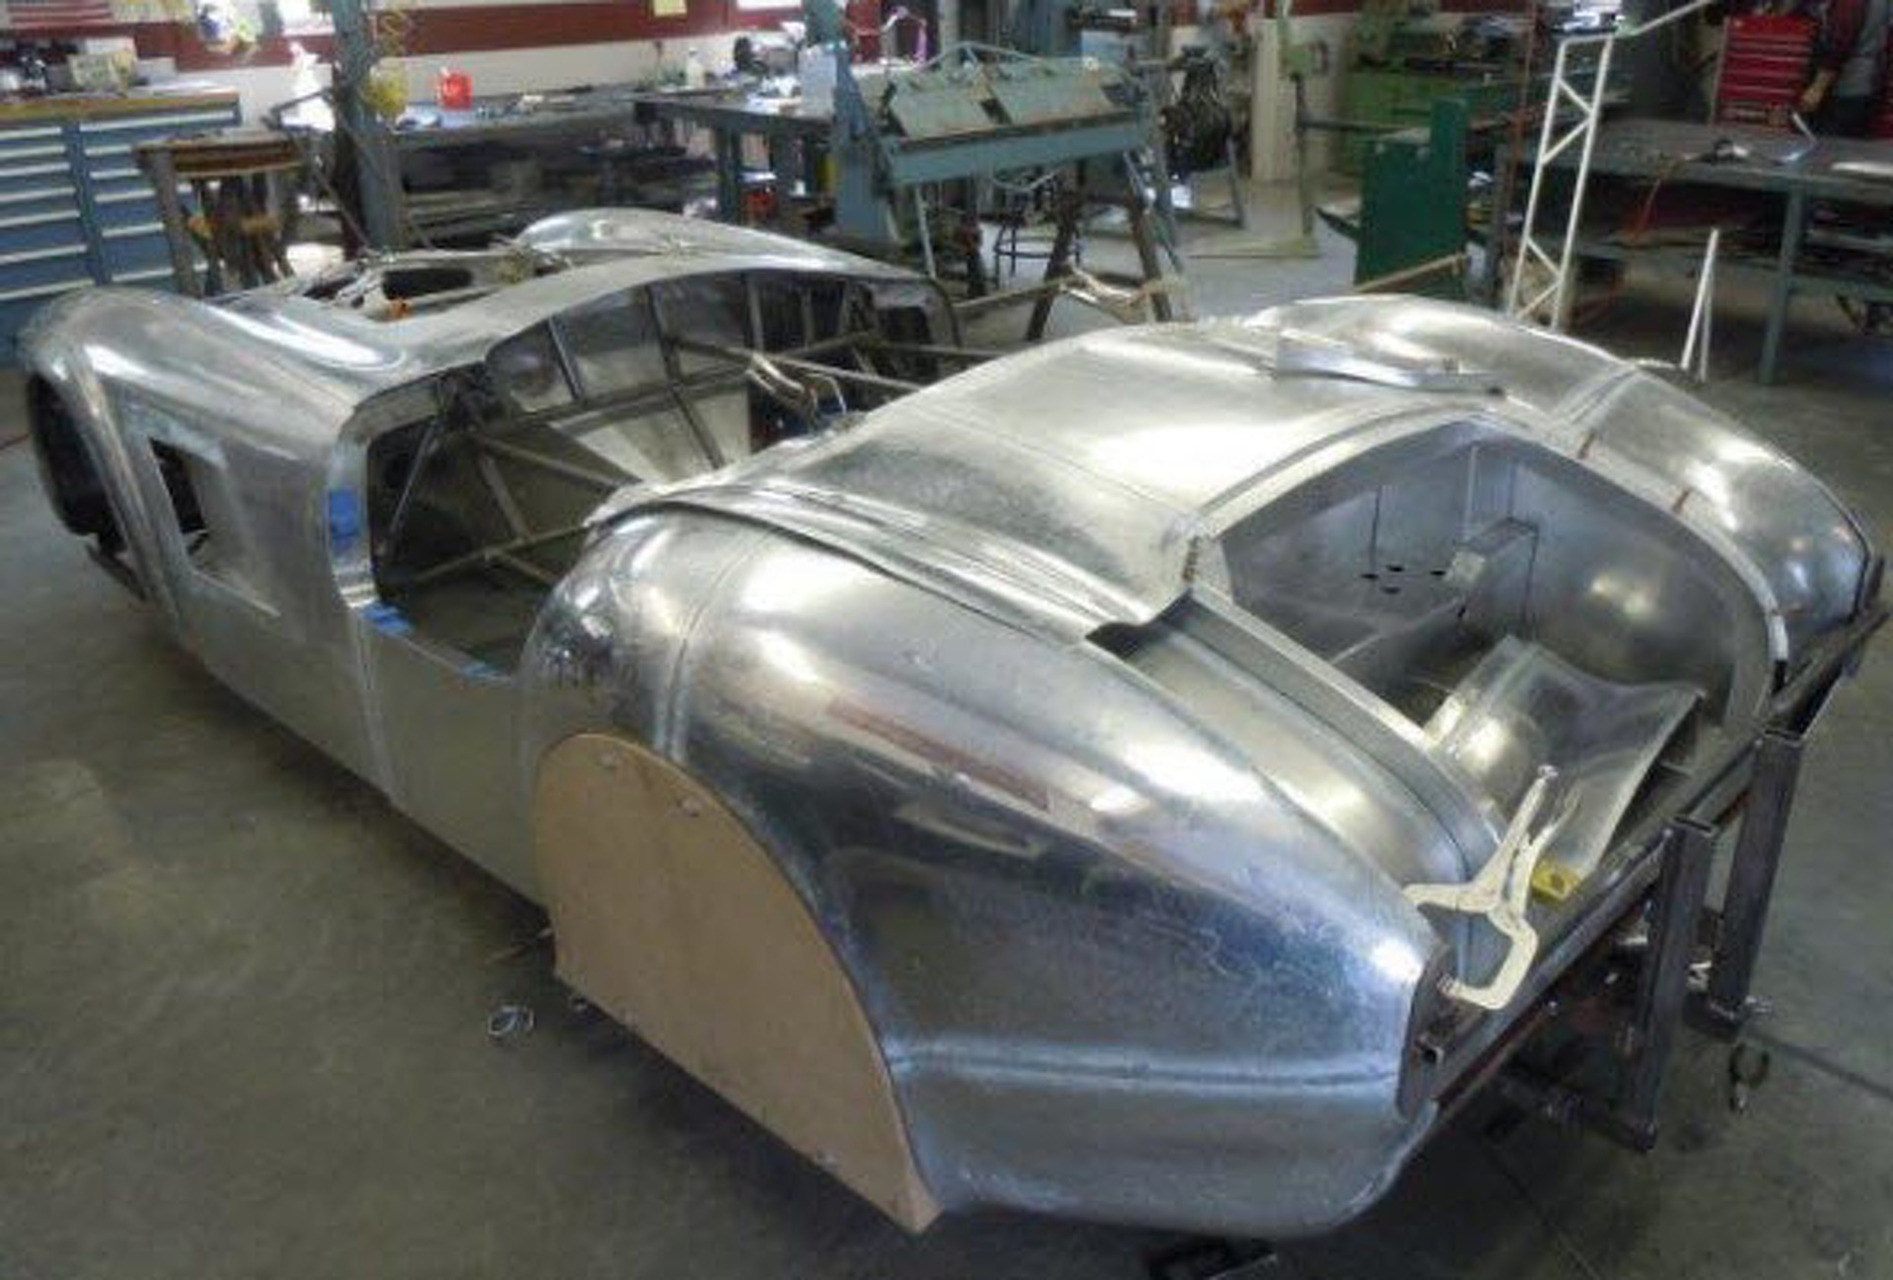 Hand-Crafted Bodies Make the 427 Roadster Way More Appealing